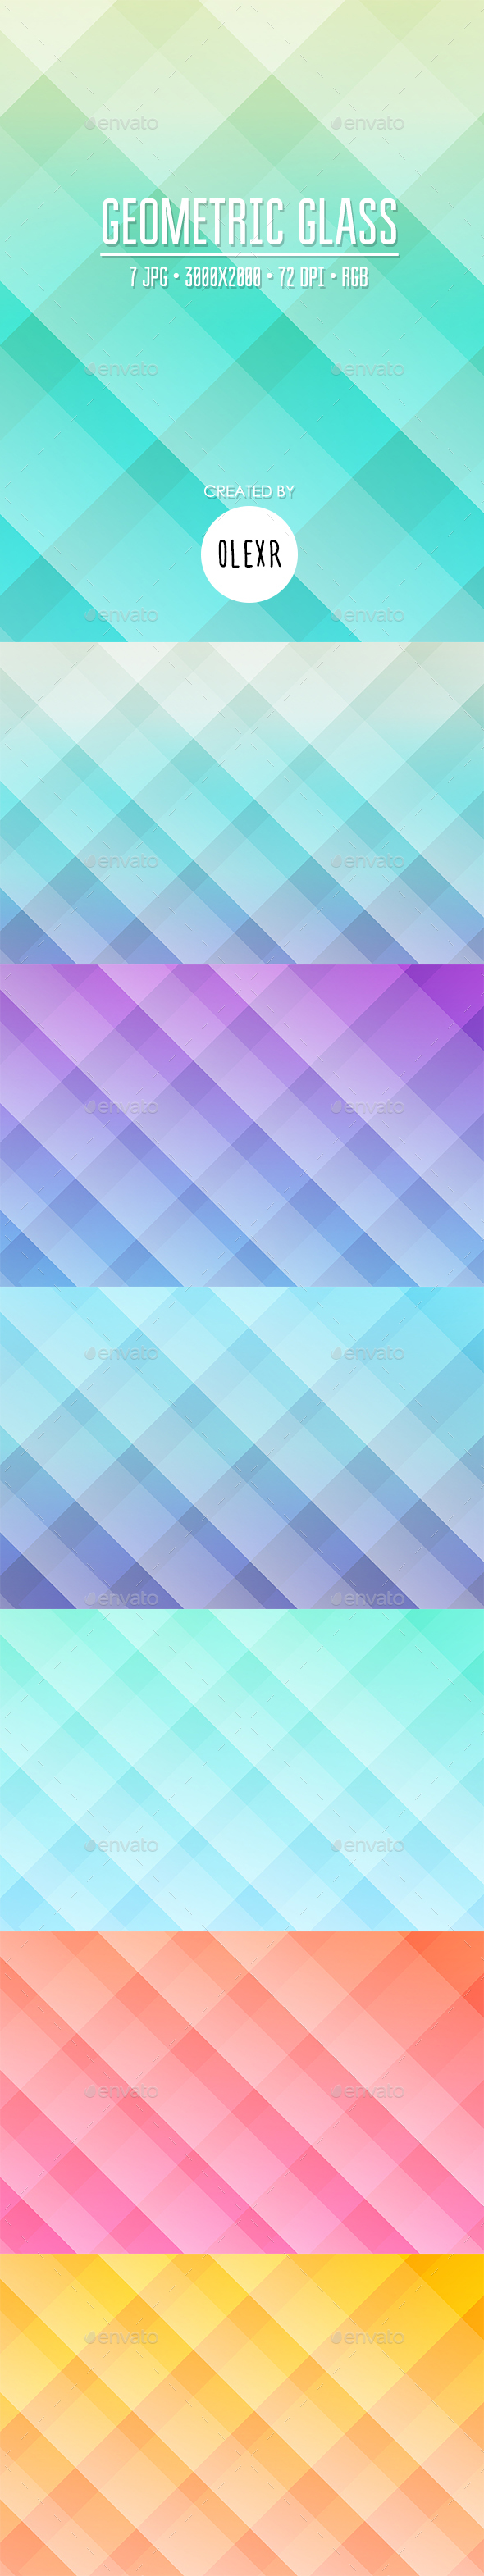 Geometric Glass Backgrounds